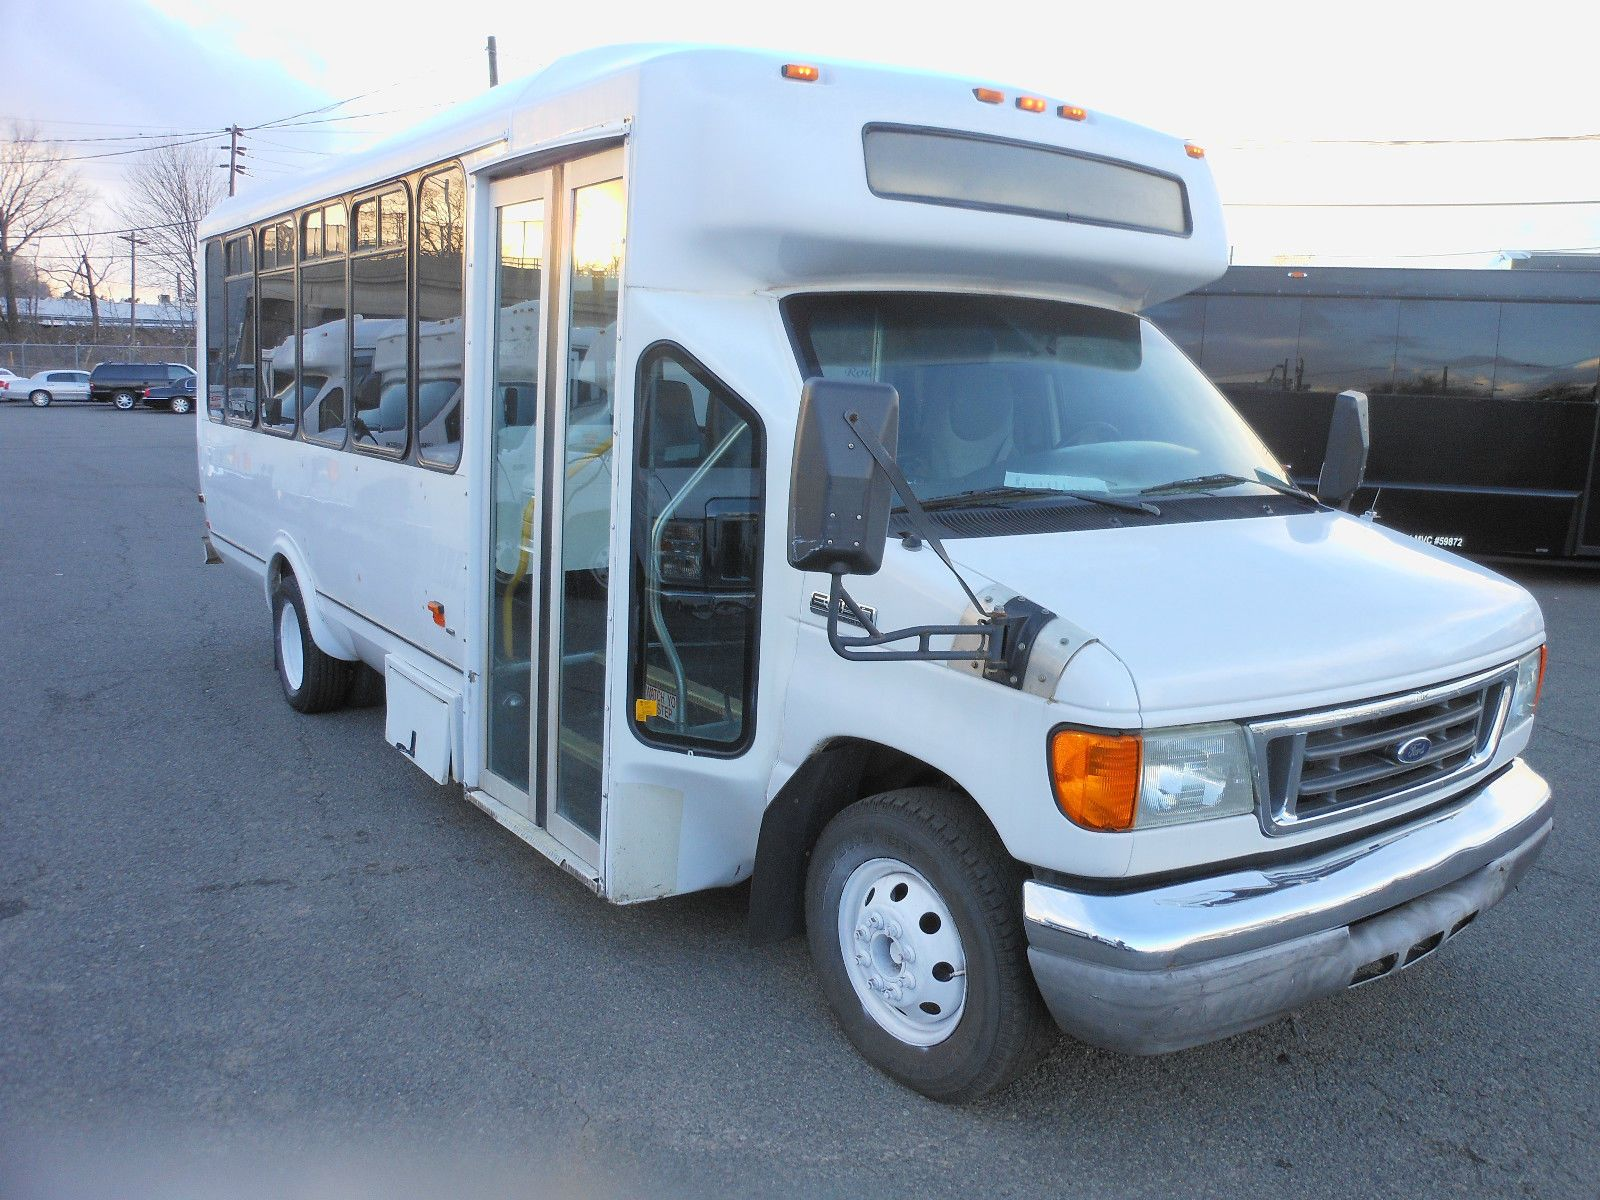 3869ab973b9b32 2006 FORD E450 SUPER DUTY Diesel 6.0L Mini-Bus 21 PASSENGER WITH 431K  Miles. This Vehicle will give many more miles of reliable service.